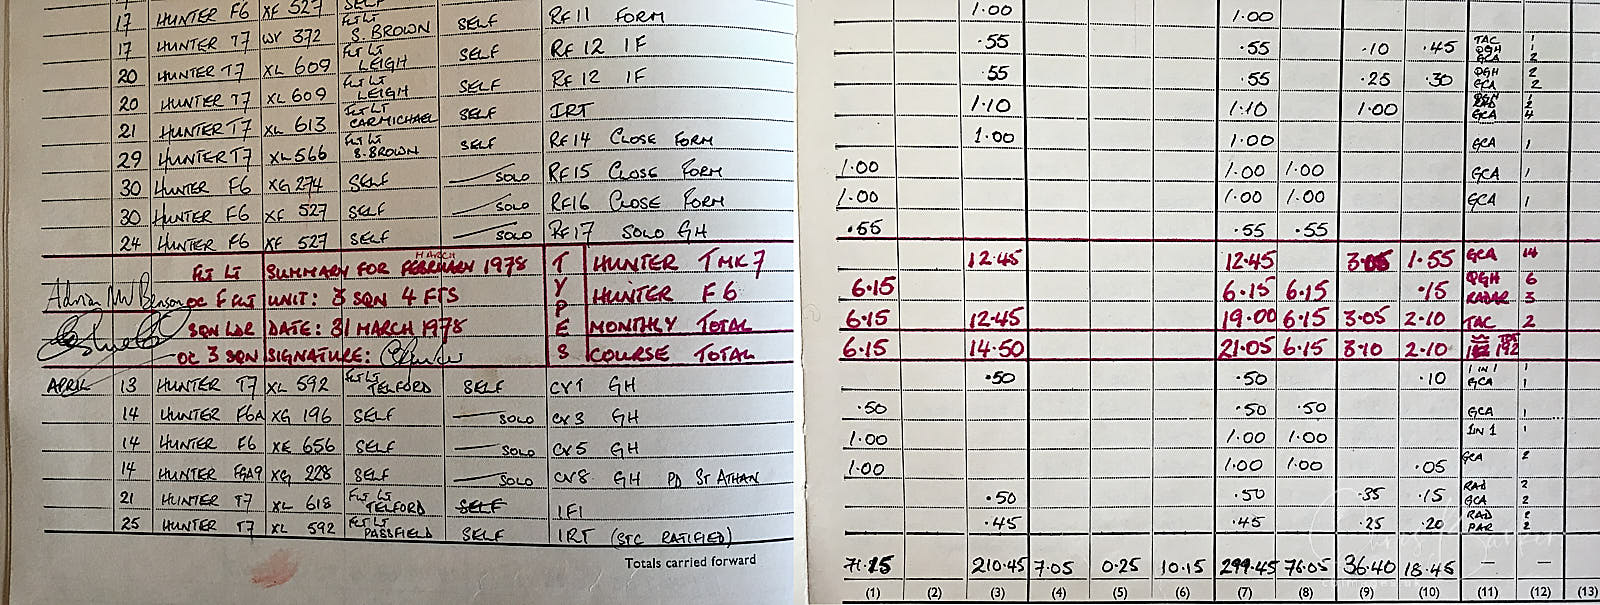 RAF pilot's logbook showing flights from April 1978.